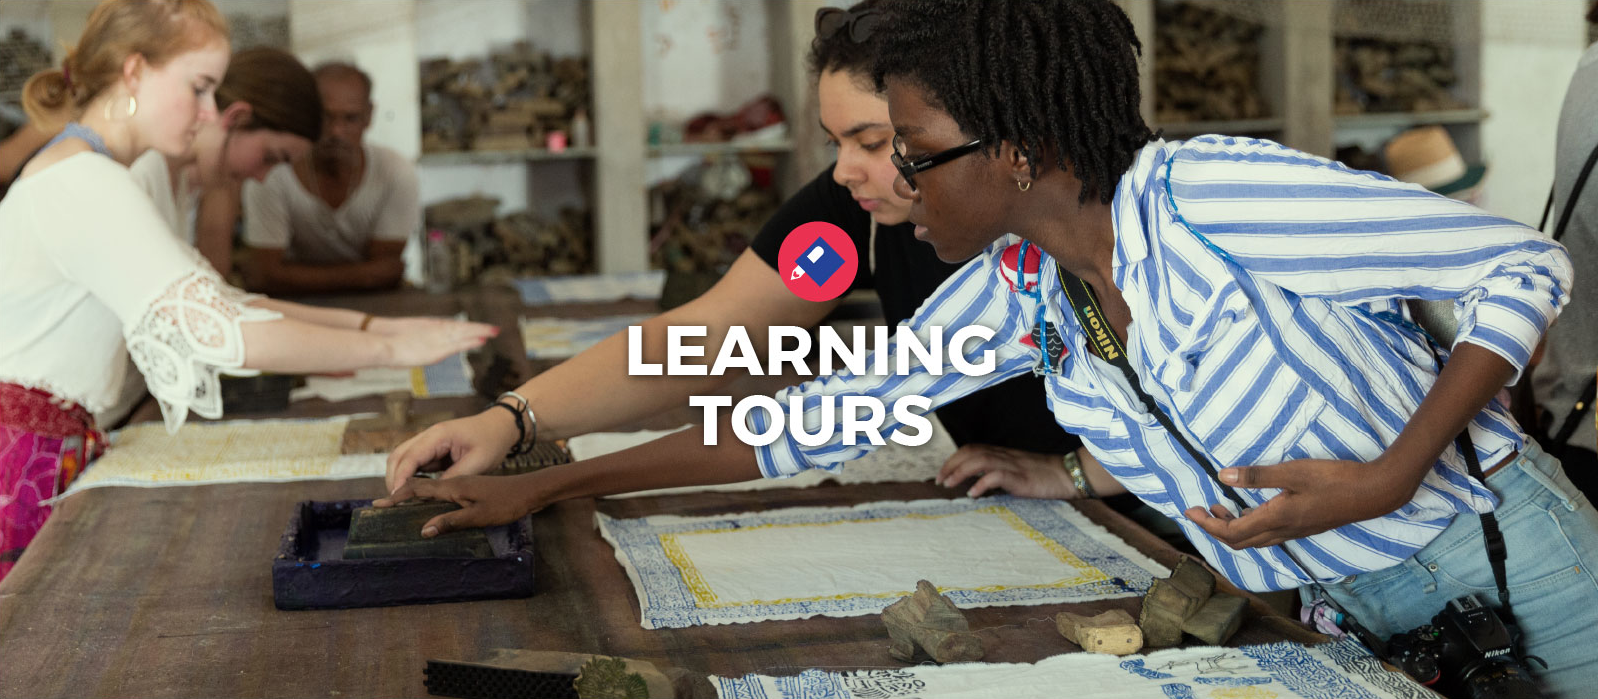 Learning Tours